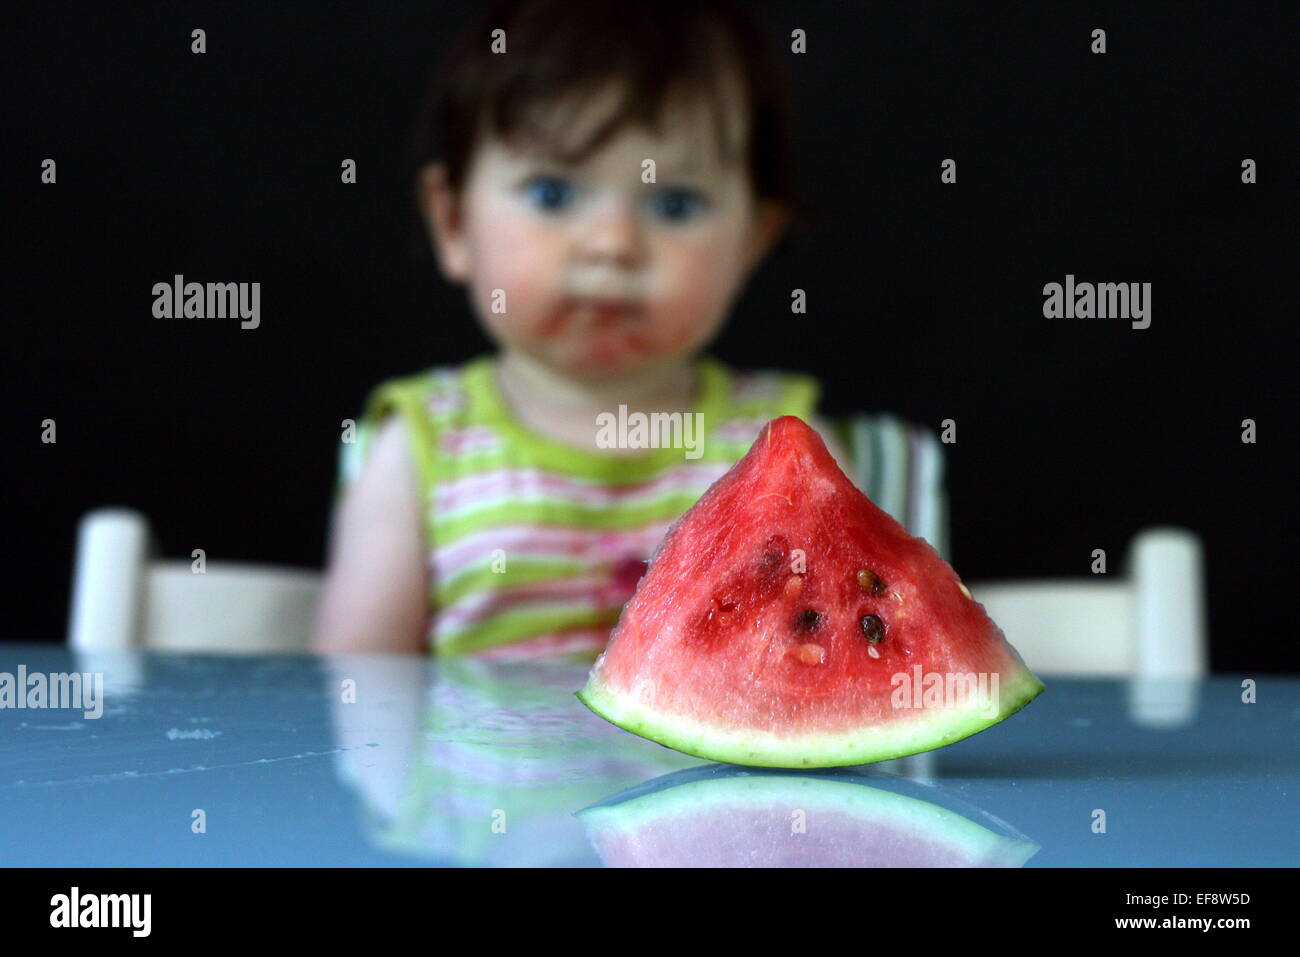 Watermelon slice and baby girl (6-11 months) on background - Stock Image